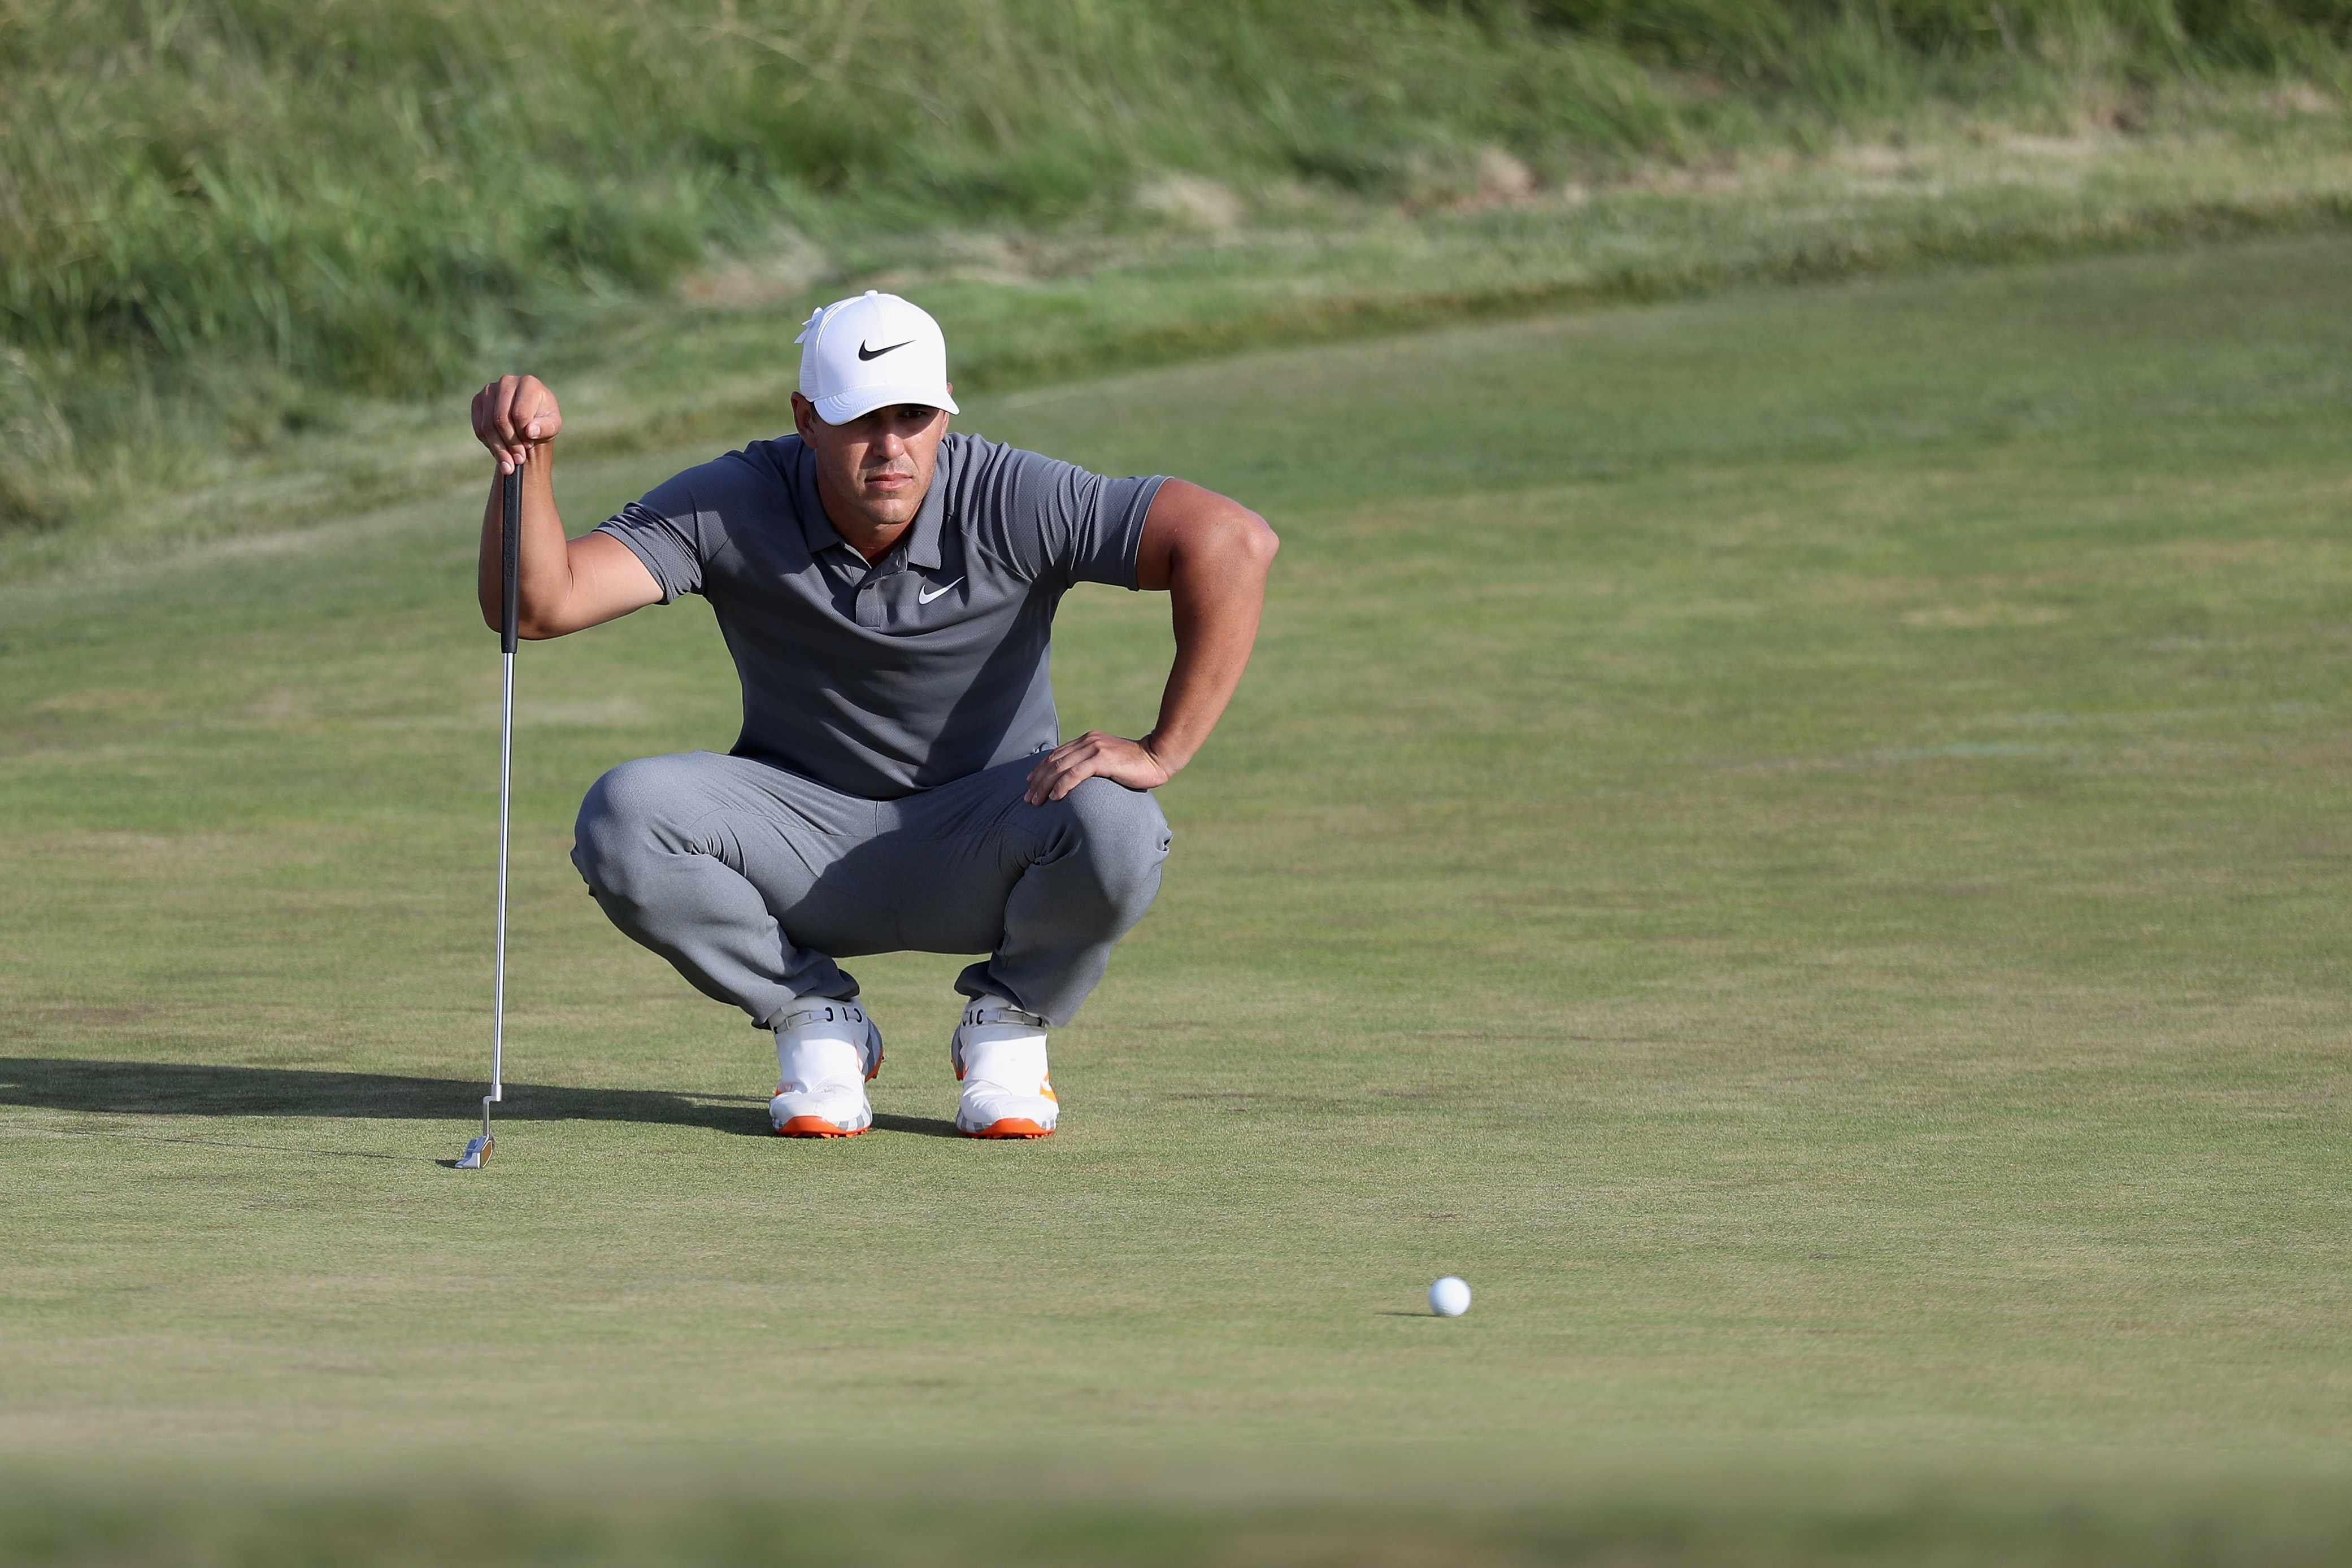 SOUTHAMPTON, NY - JUNE 17: Brooks Koepka of the United States putts on the 18th green during the final round of the 2018 U.S. Open at Shinnecock Hills Golf Club on June 17, 2018 in Southampton, New York.  (Photo by Rob Carr/Getty Images)